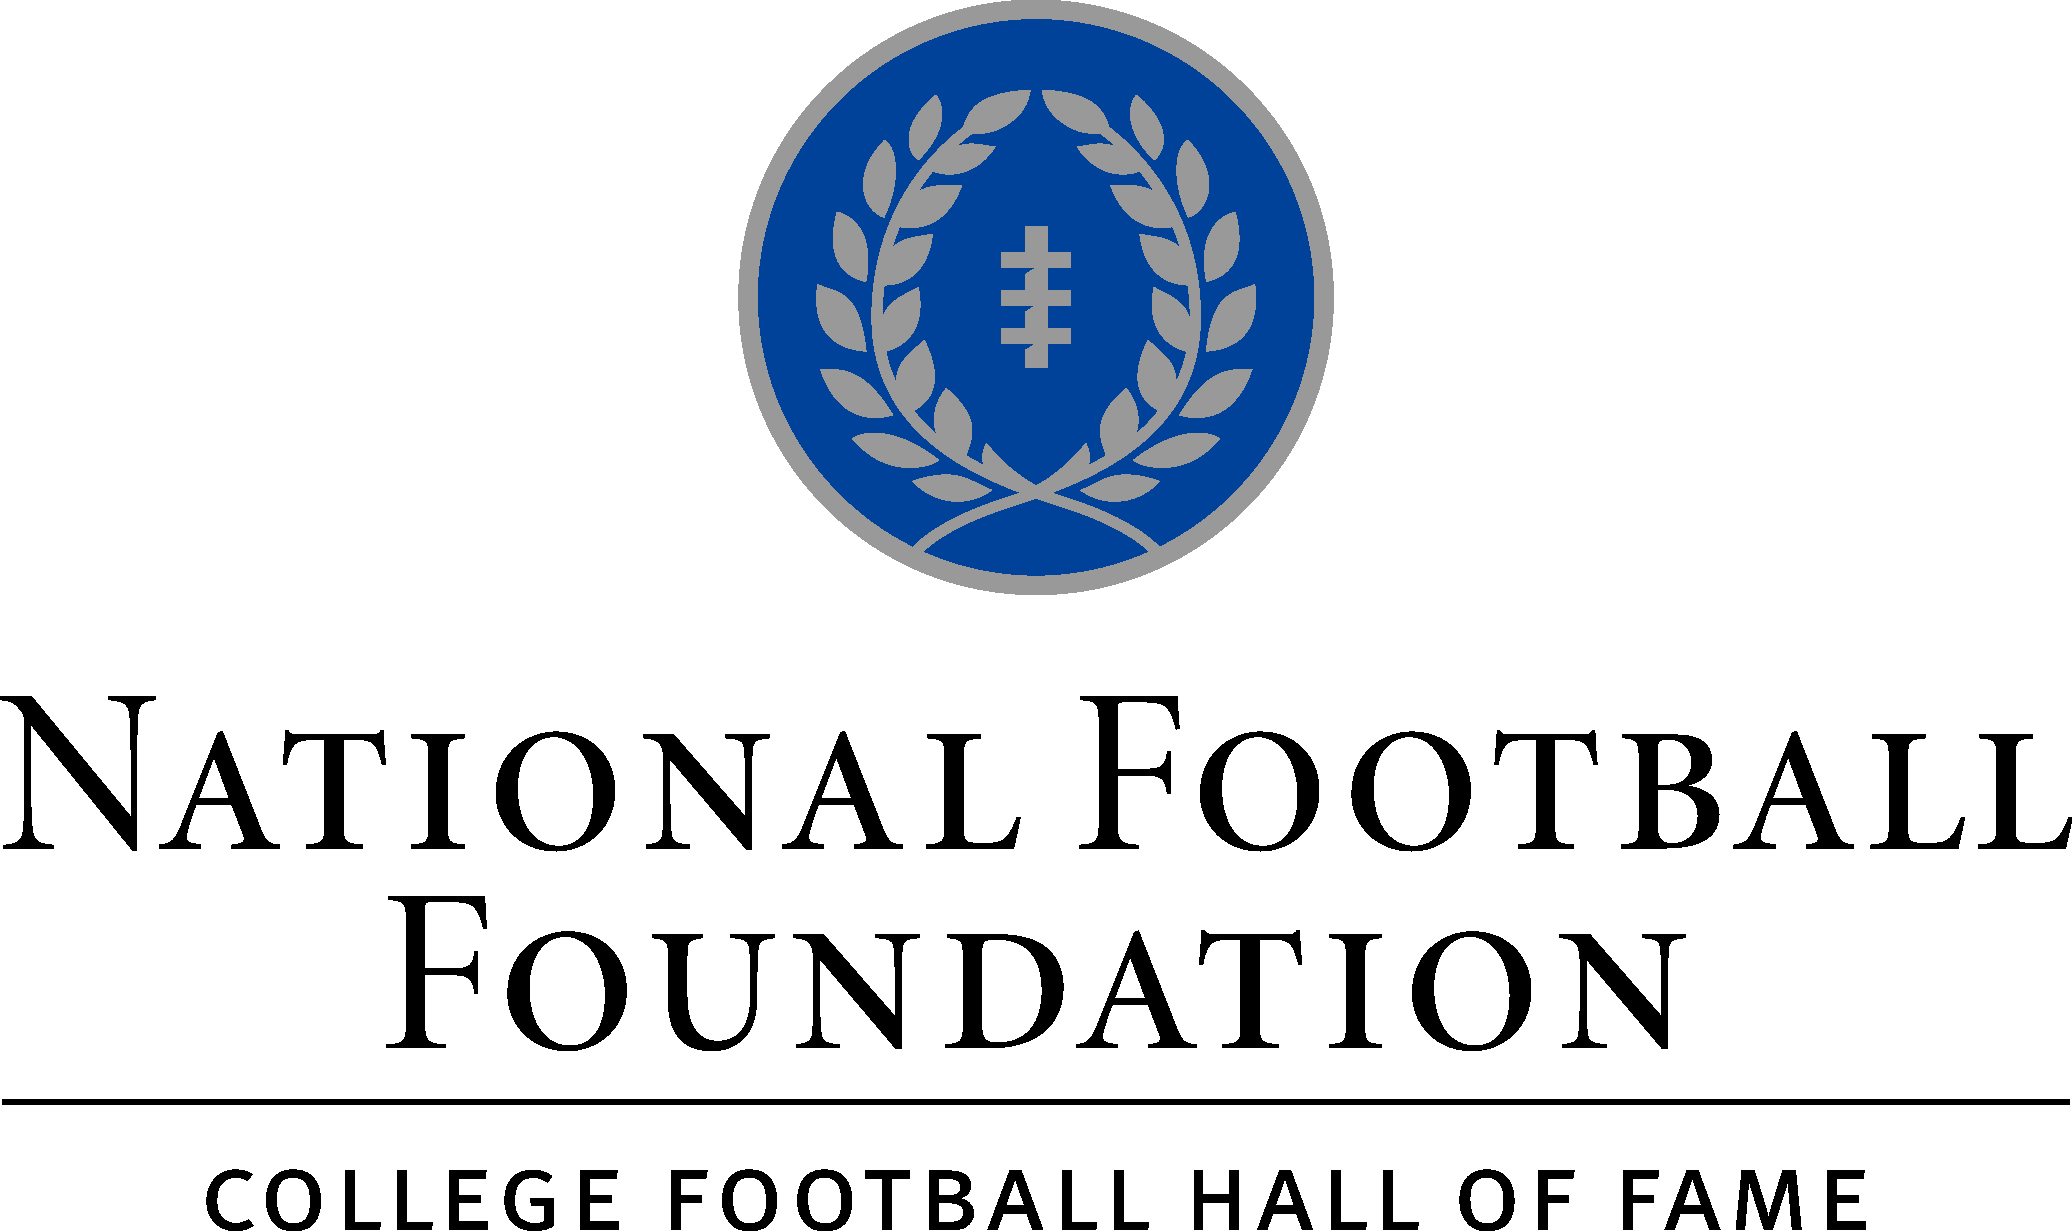 When Is The Football Game On Division I College Football Tv